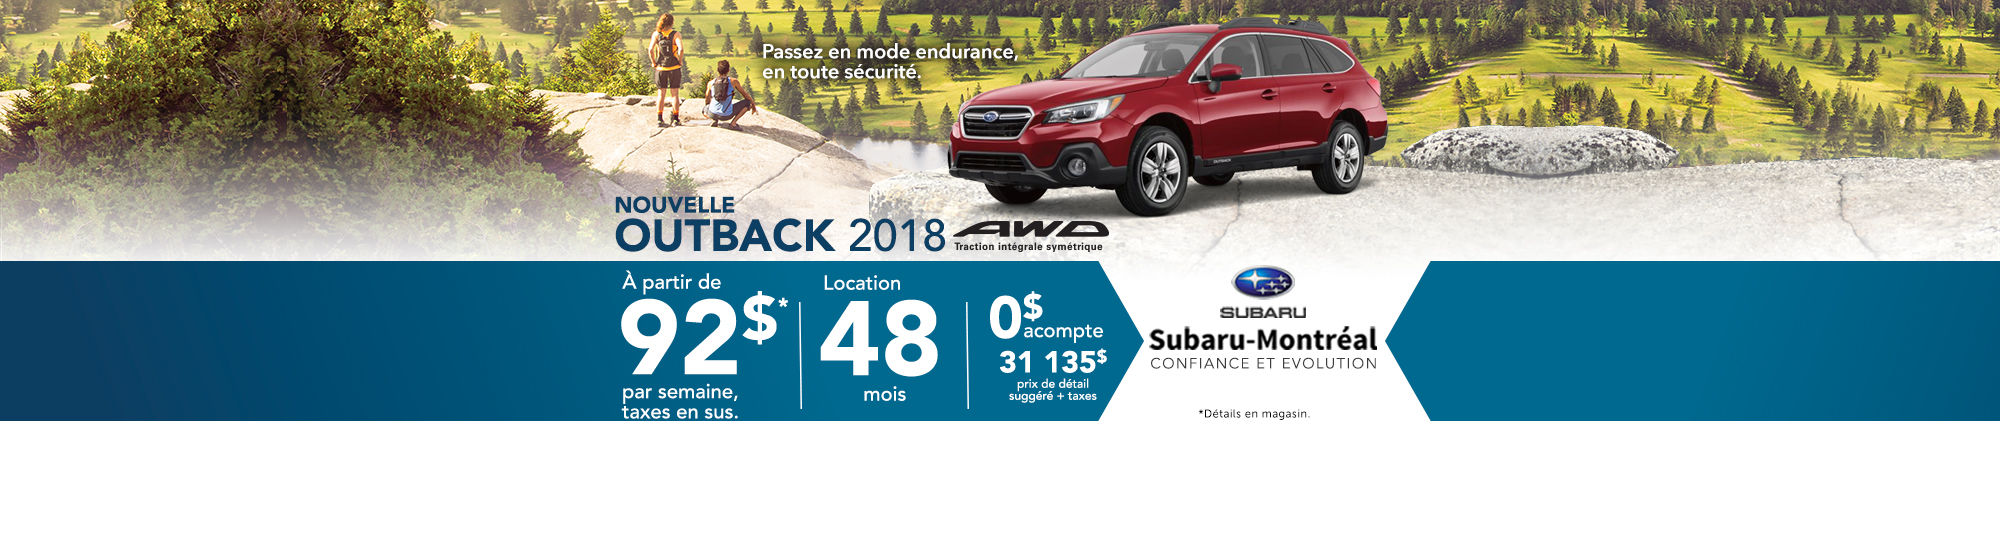 outback 2018